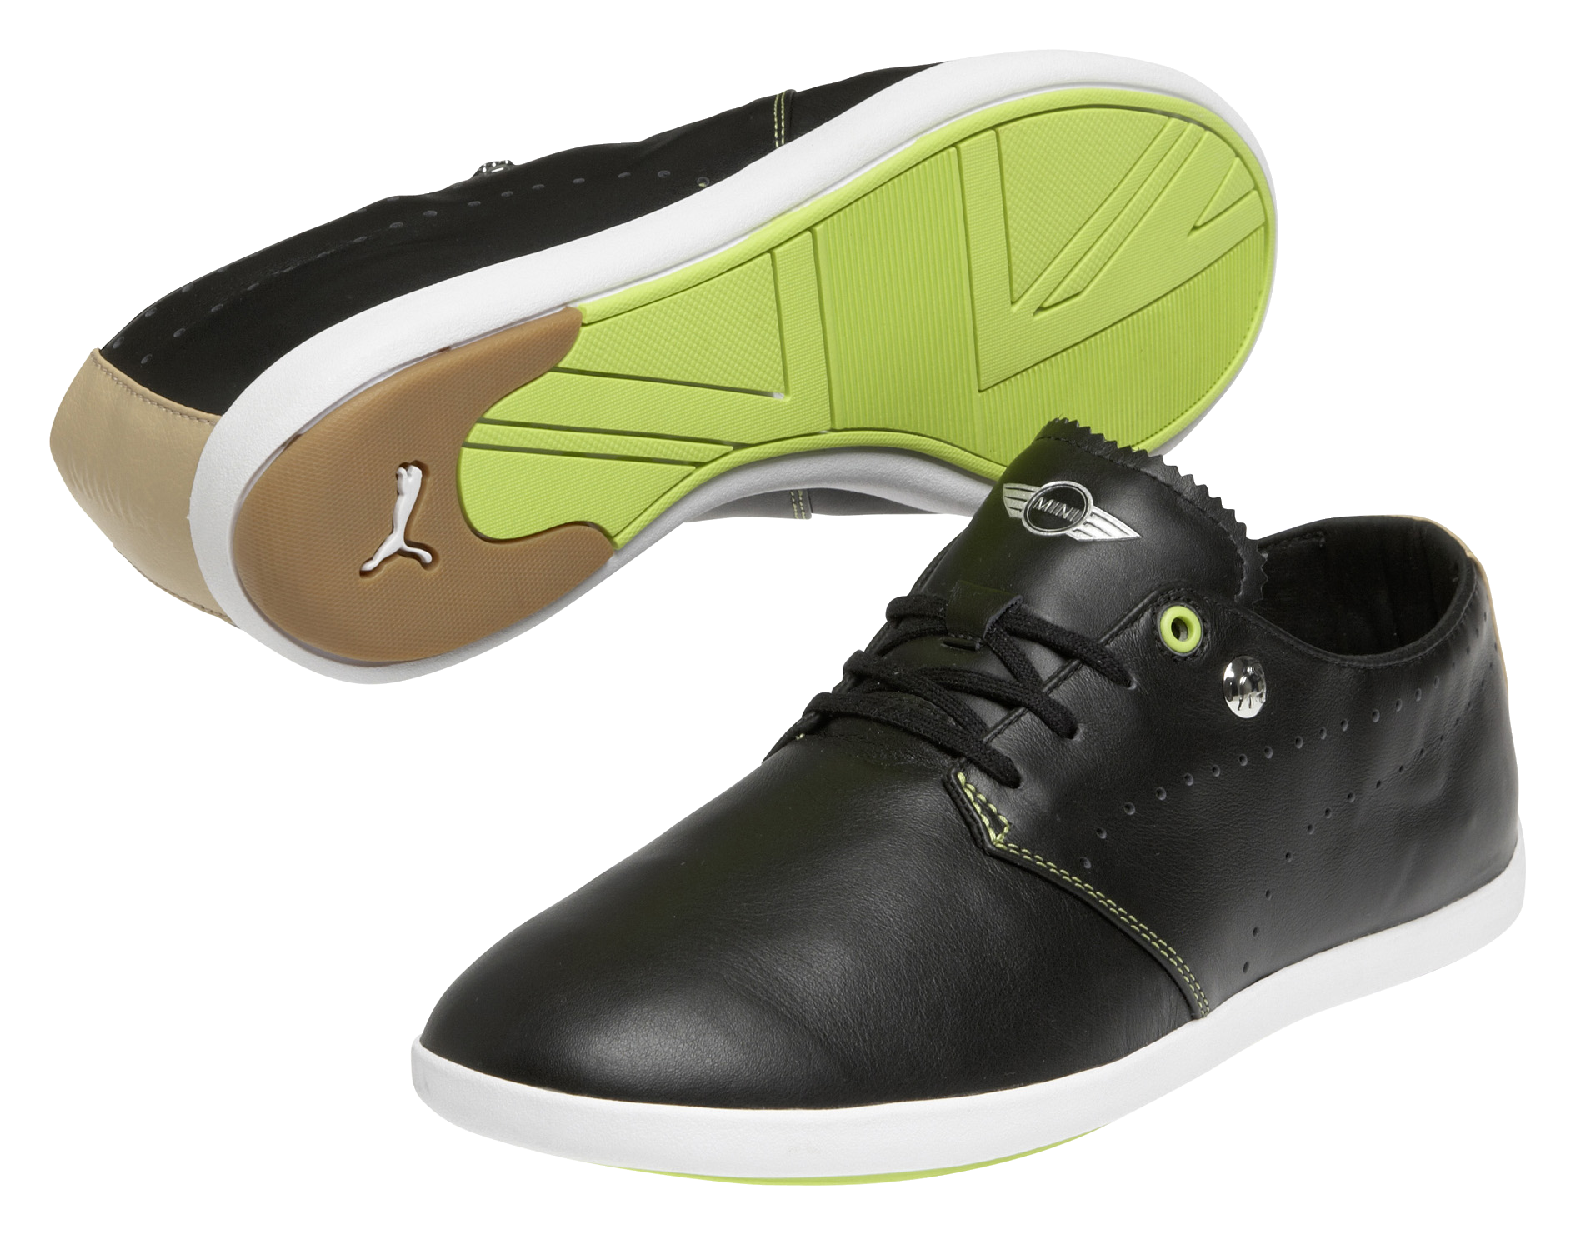 304380_01-Alwyn Low MINI black-fluo lime-490